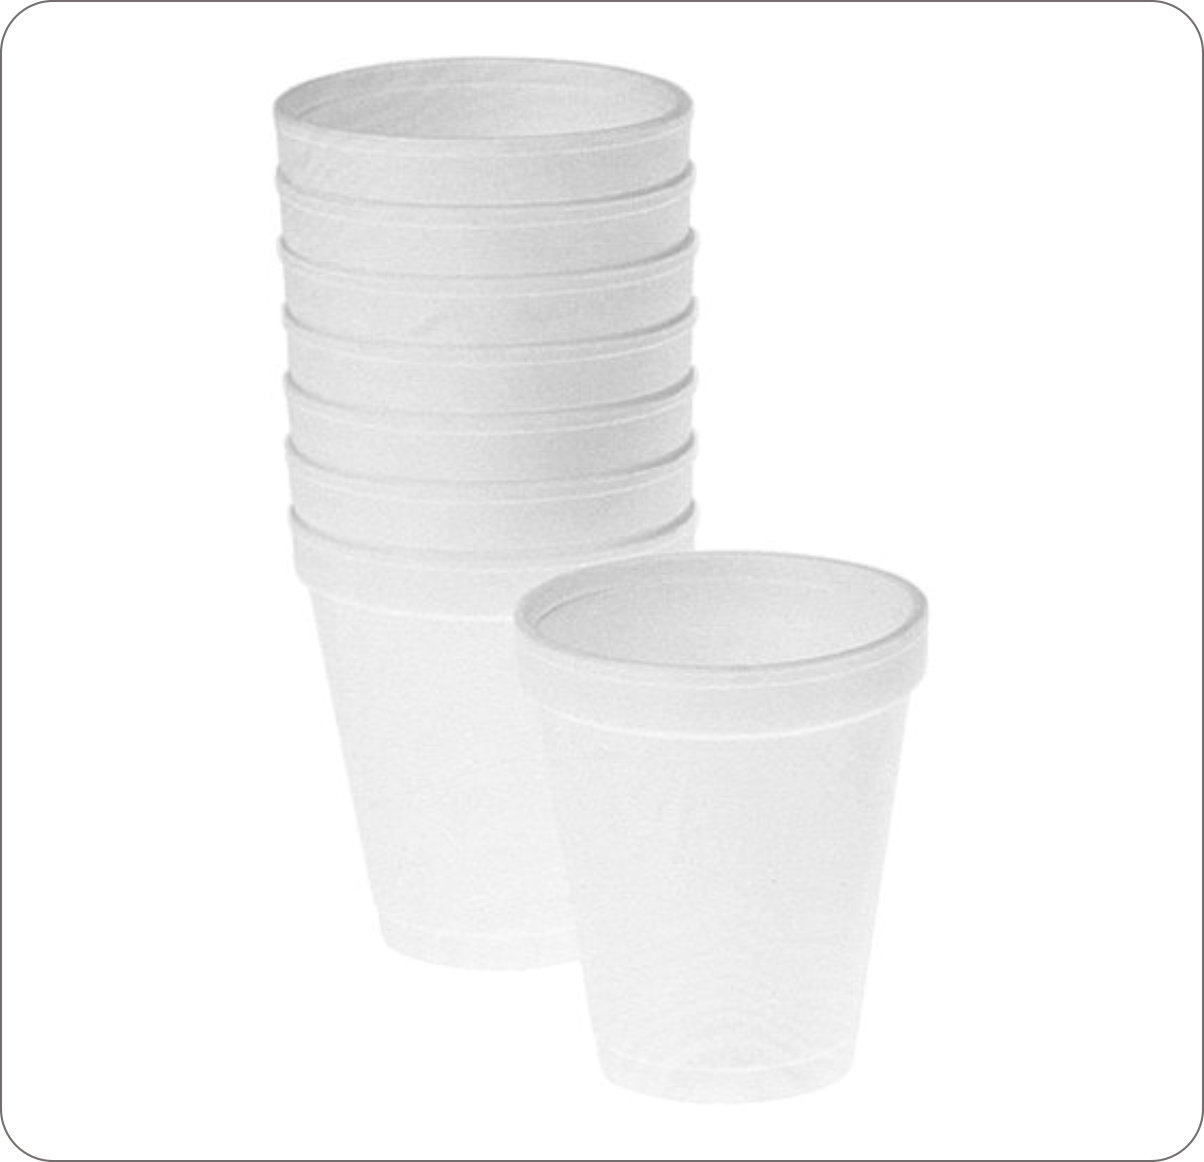 Cups Assorted Foam Plain White